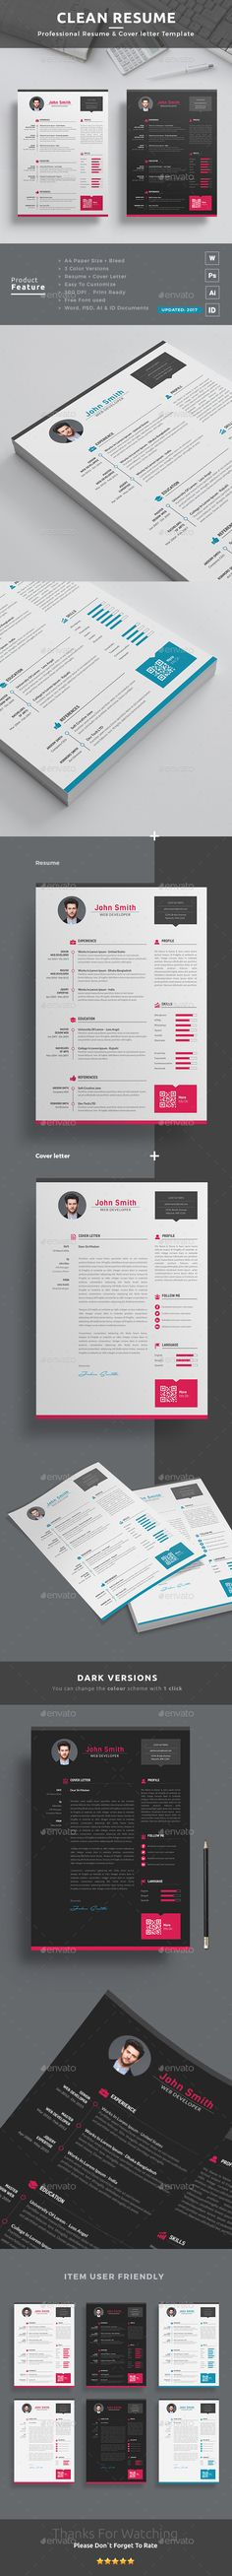 Resume by themedevisers Resume Word / CV Template is the creative, clean, modern and professional resume template to help you land that great job. The f